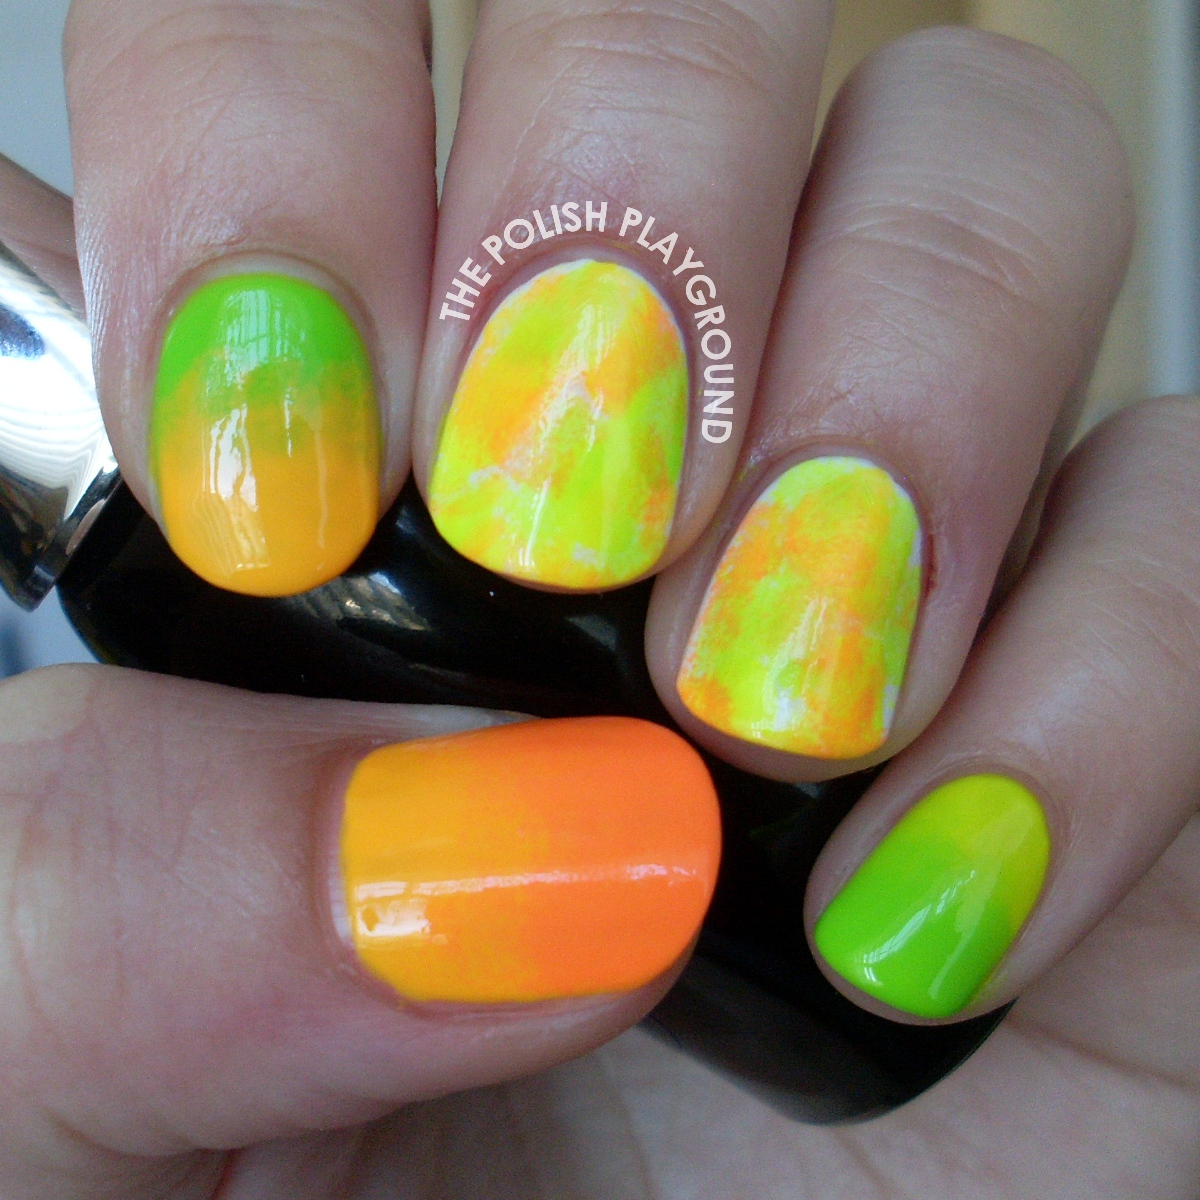 Neon Sponging and Gradient Nail Art